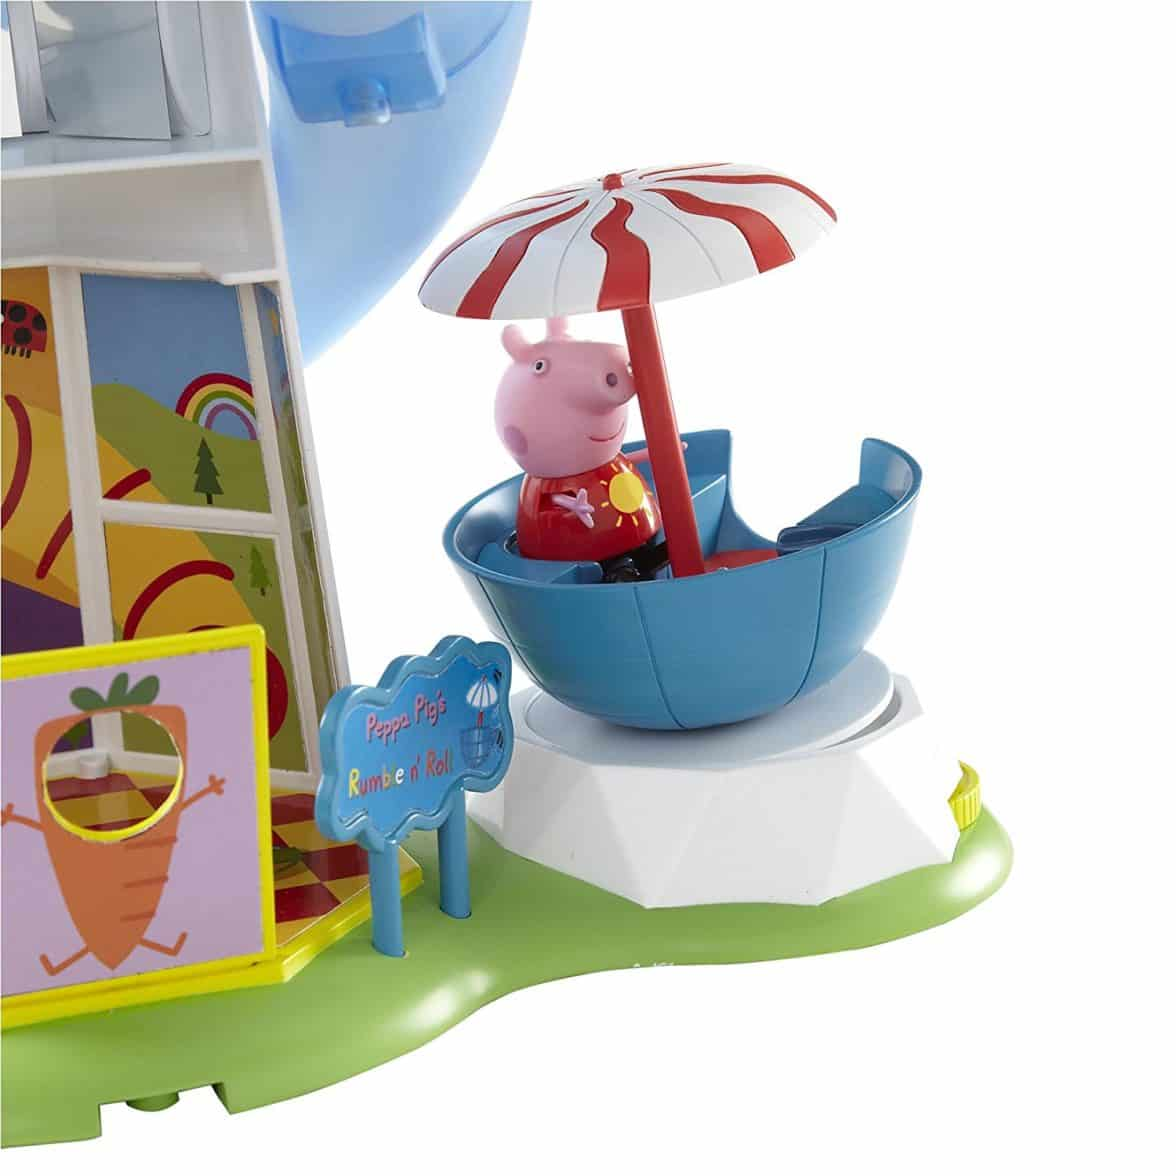 Peppa Pig Theme Park Helter Skelter Playset Toy